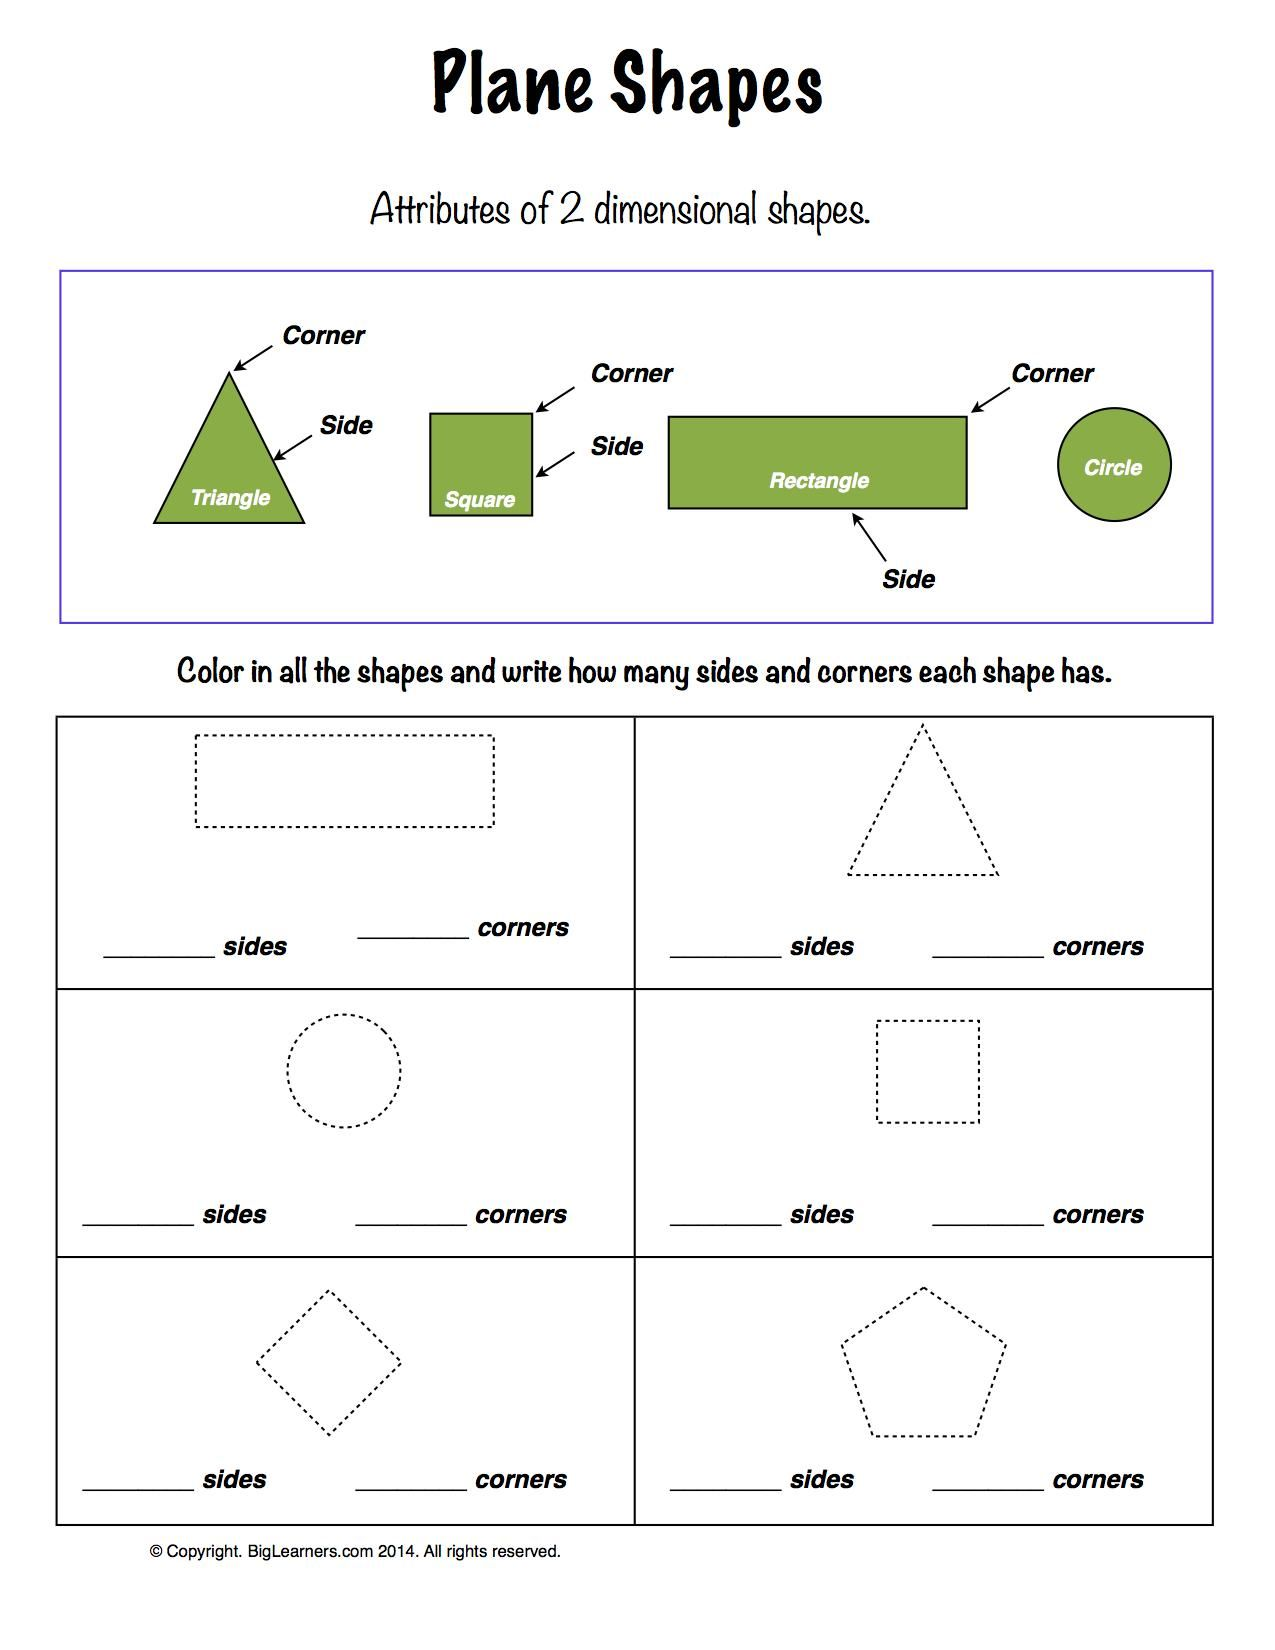 worksheet plane shapes learn about the attributes of plane shapes geometry plane shapes. Black Bedroom Furniture Sets. Home Design Ideas